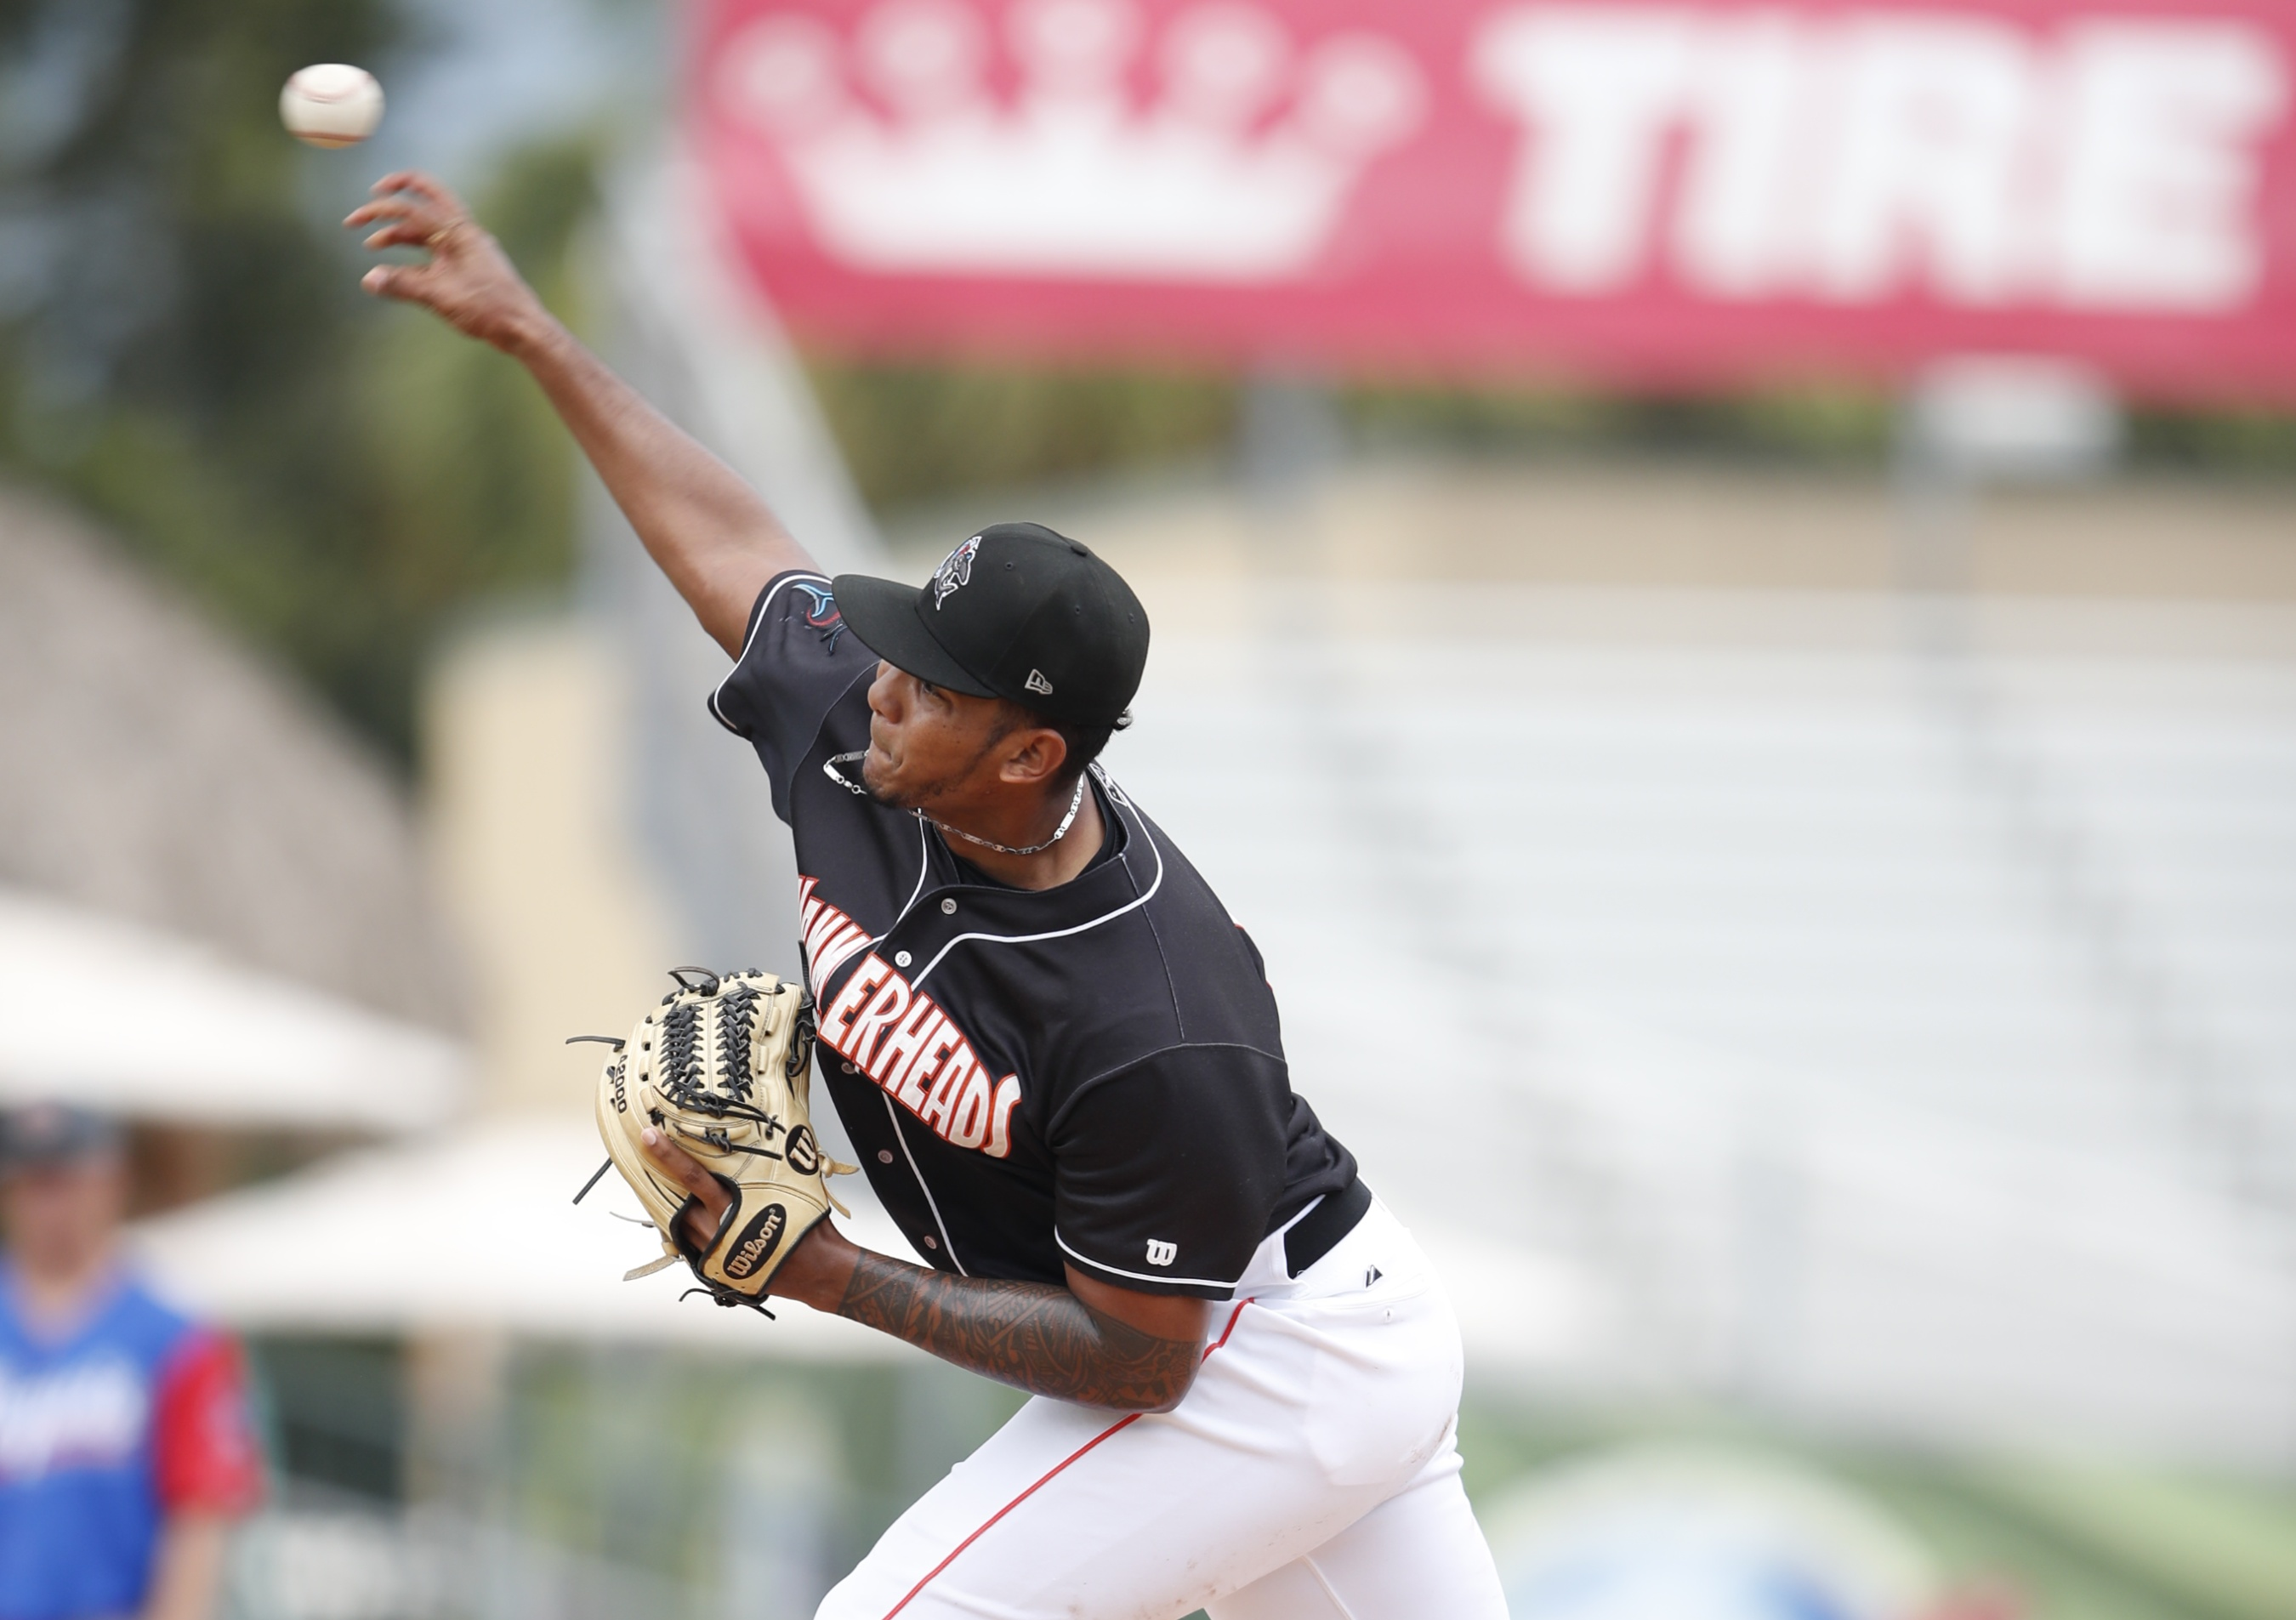 Humberto Mejia Q&A: Getting To Know The Marlins Prospect